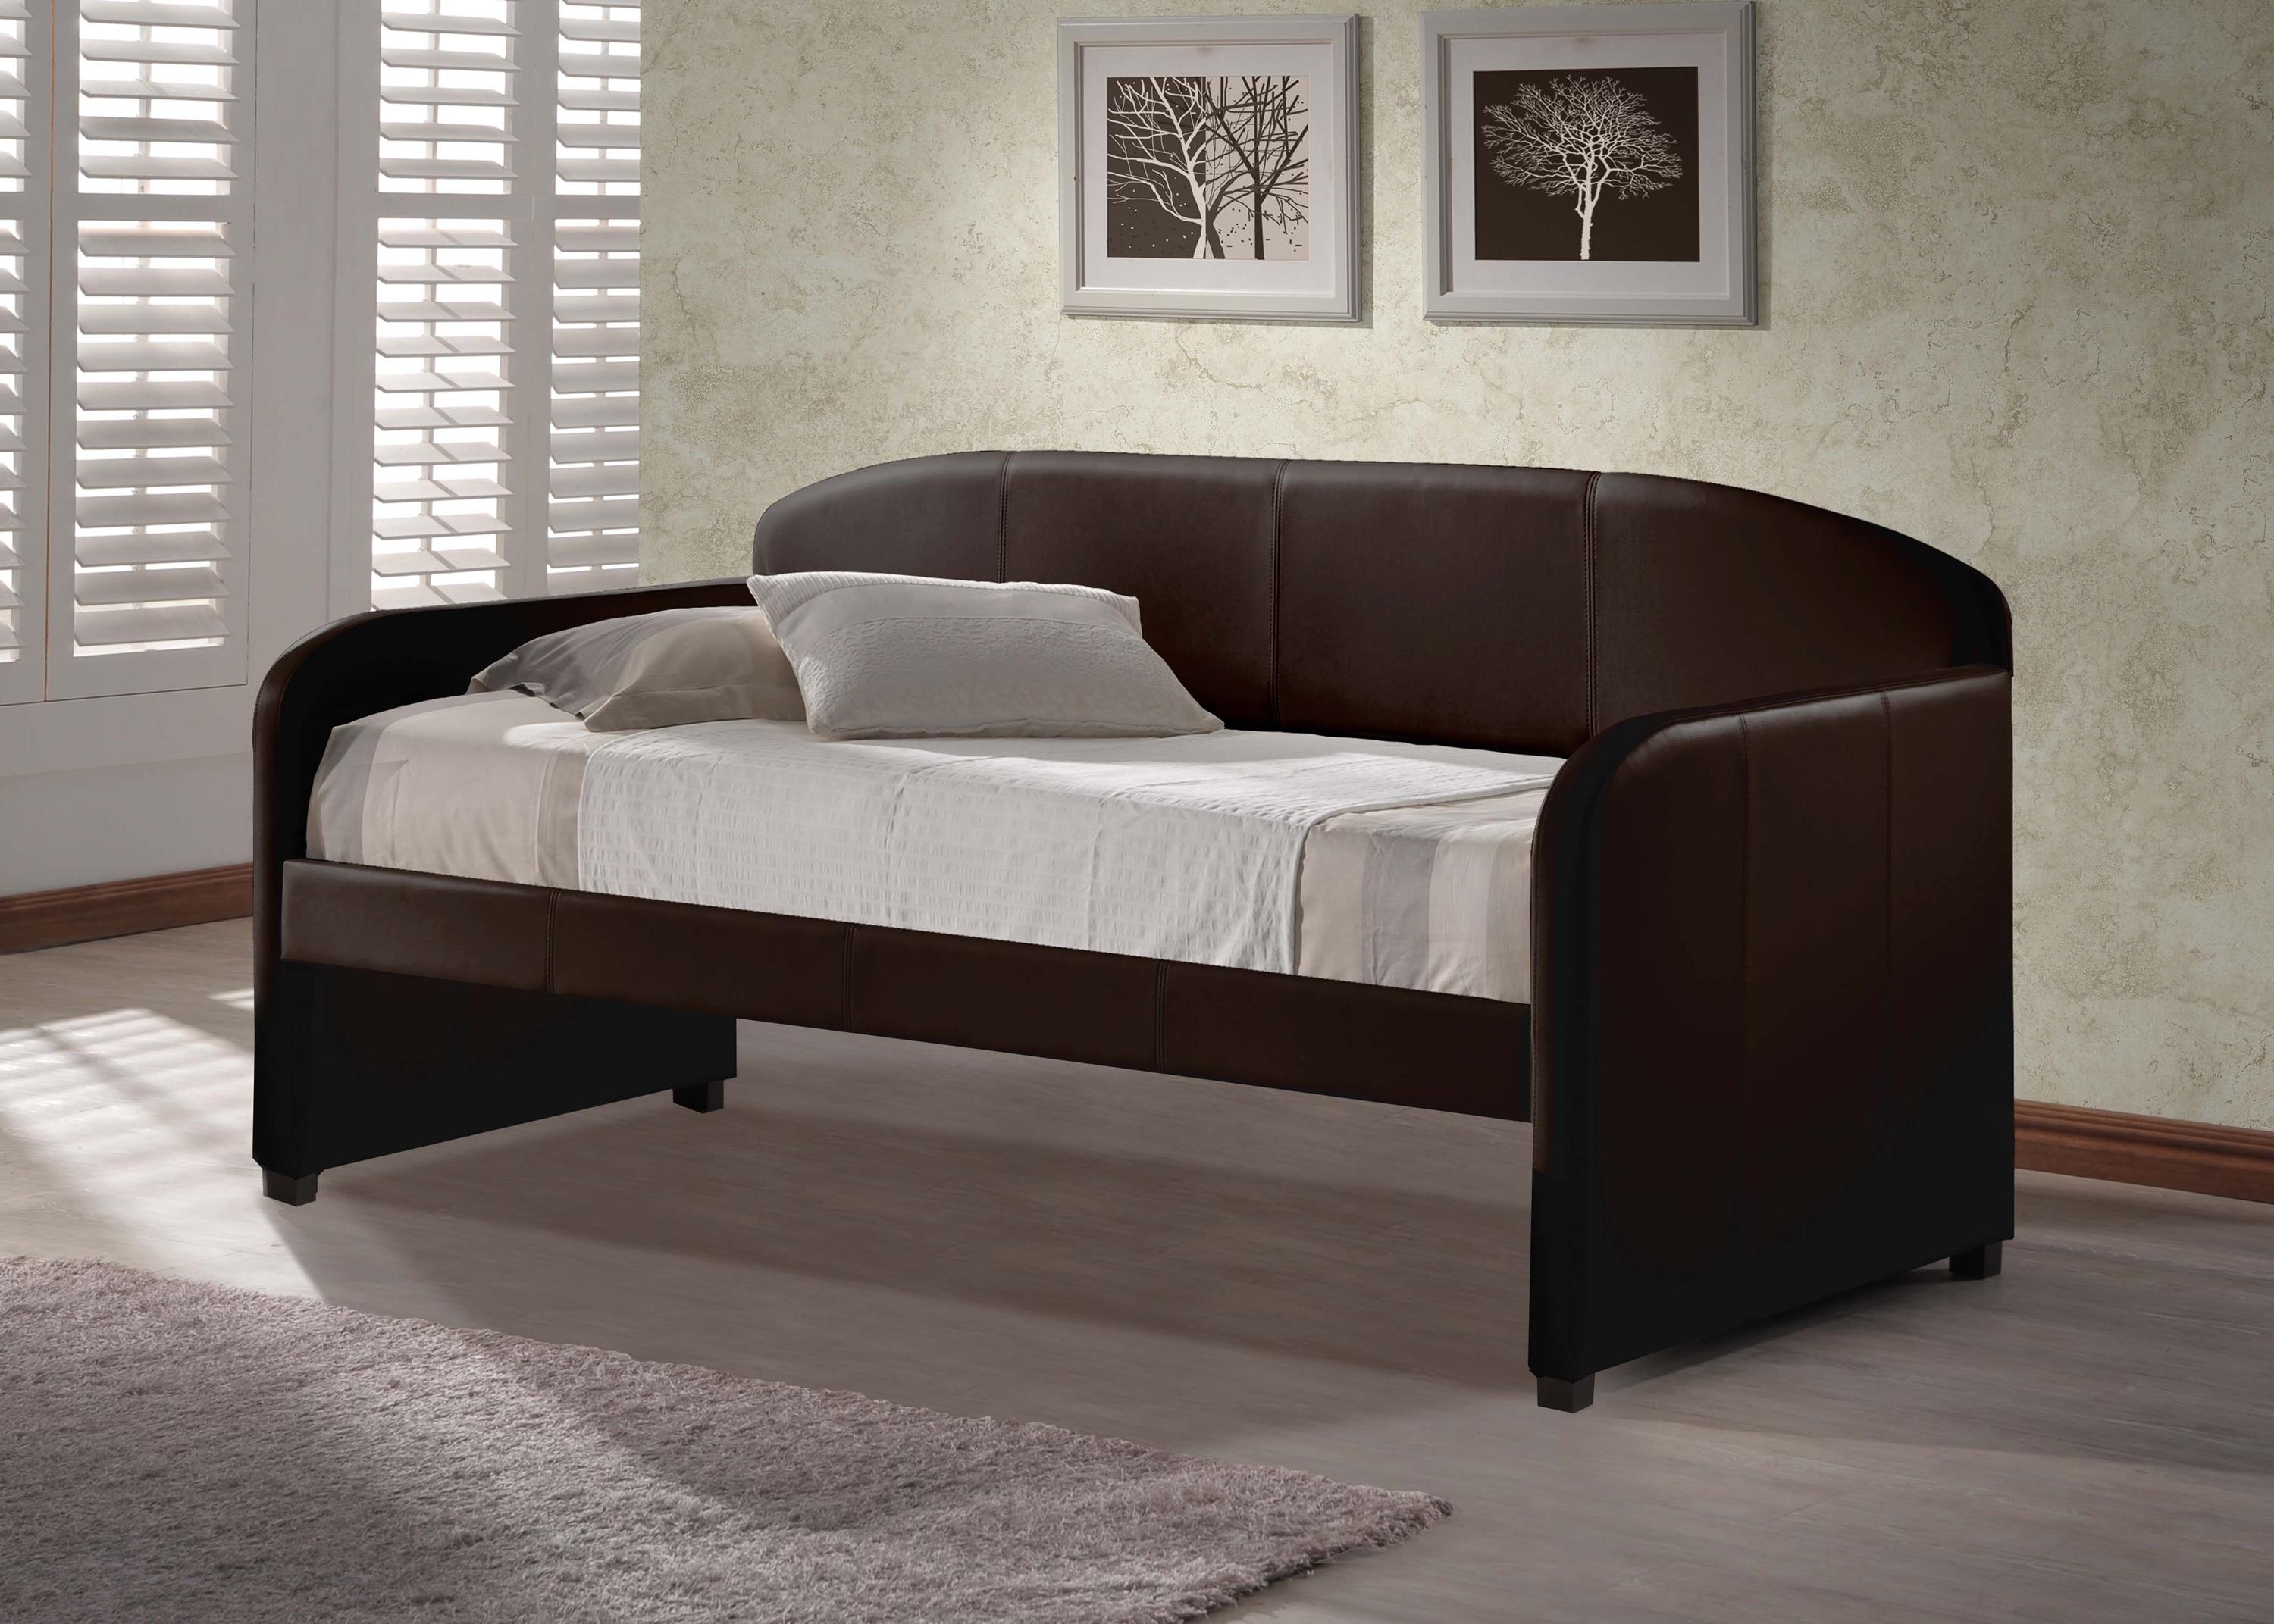 Hillsdale Daybeds Twin Shelby Daybed - Item Number: 1613DB